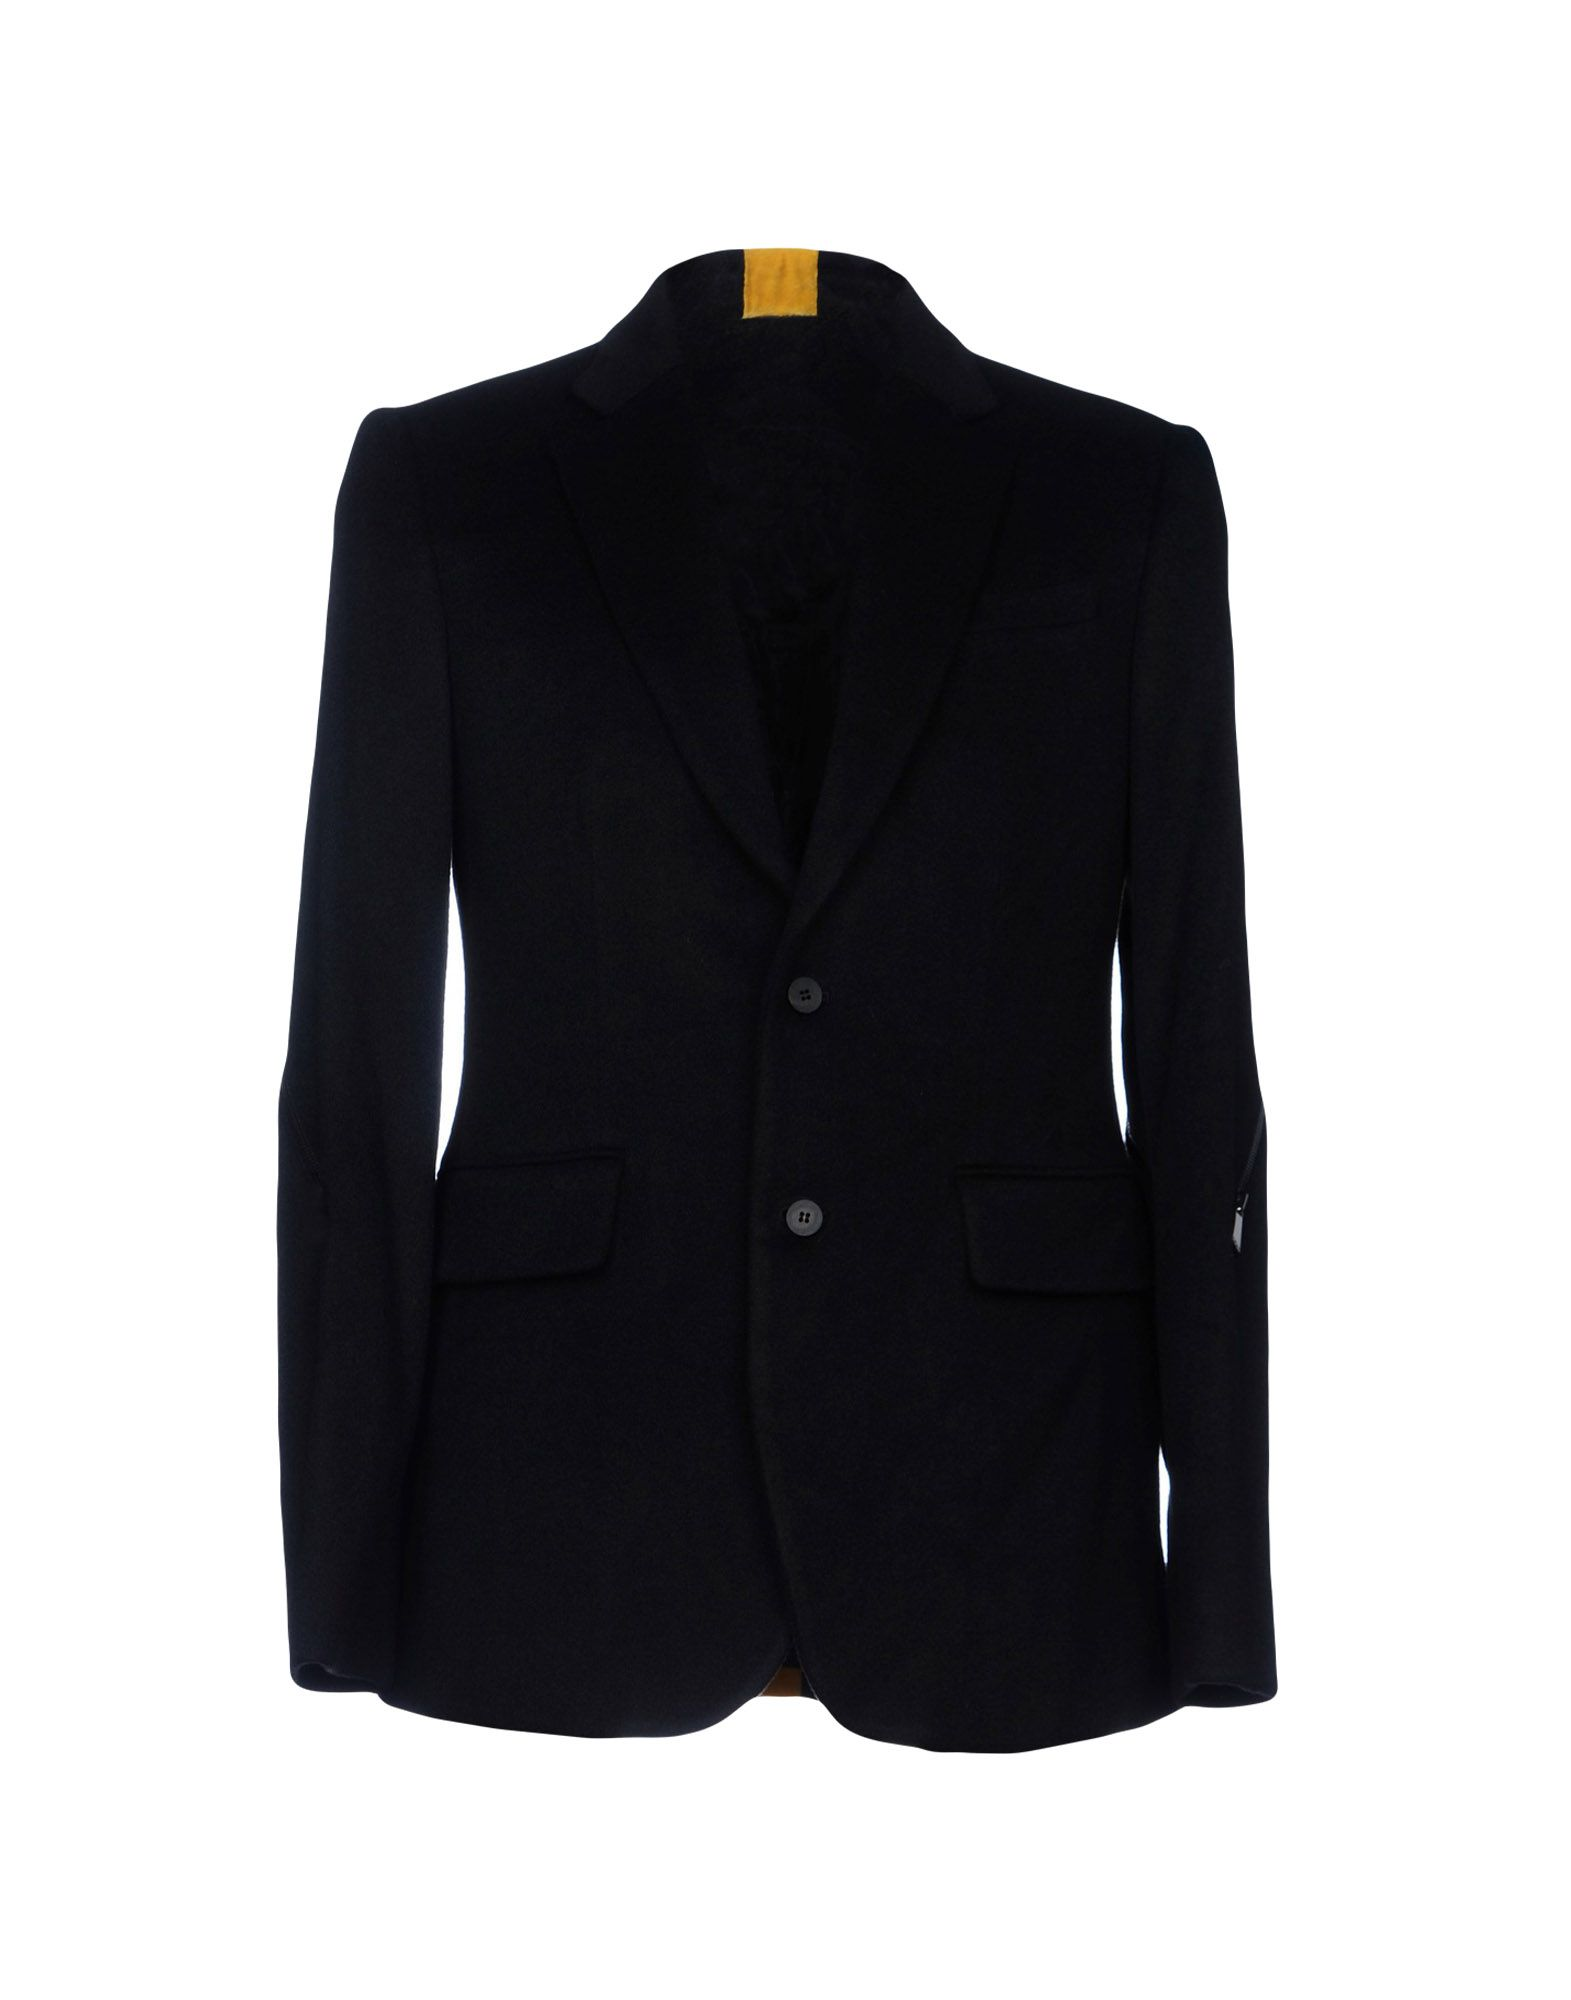 Giacca D.Gnak By Kang.D Uomo - Acquista online su